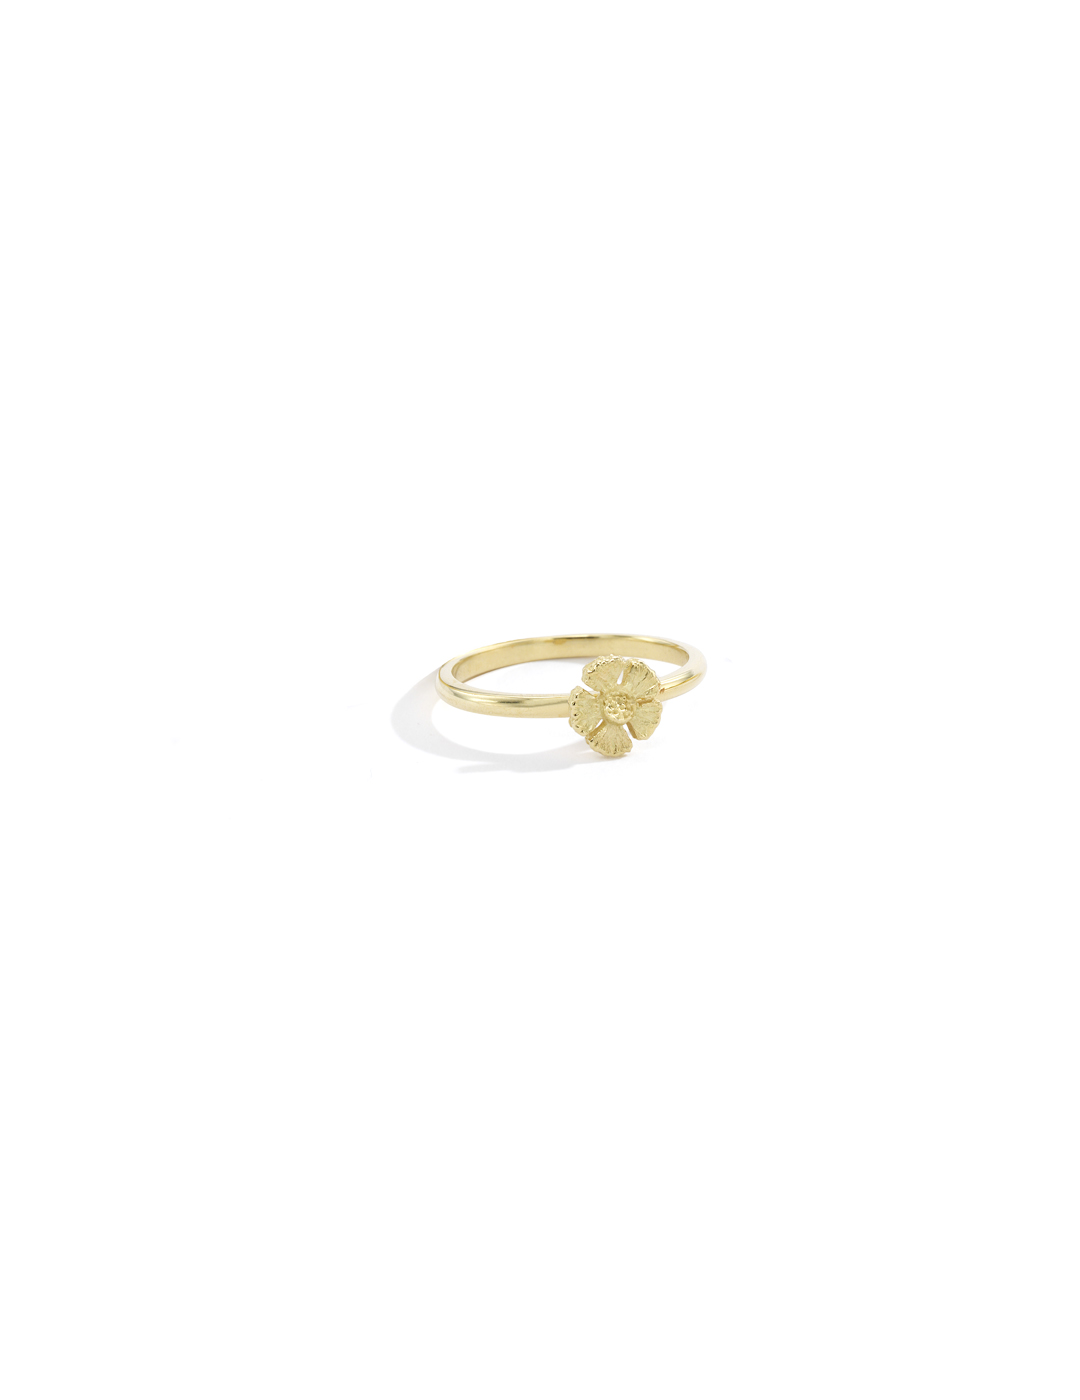 mish_products_rings_Strawberry Ring-plain-2